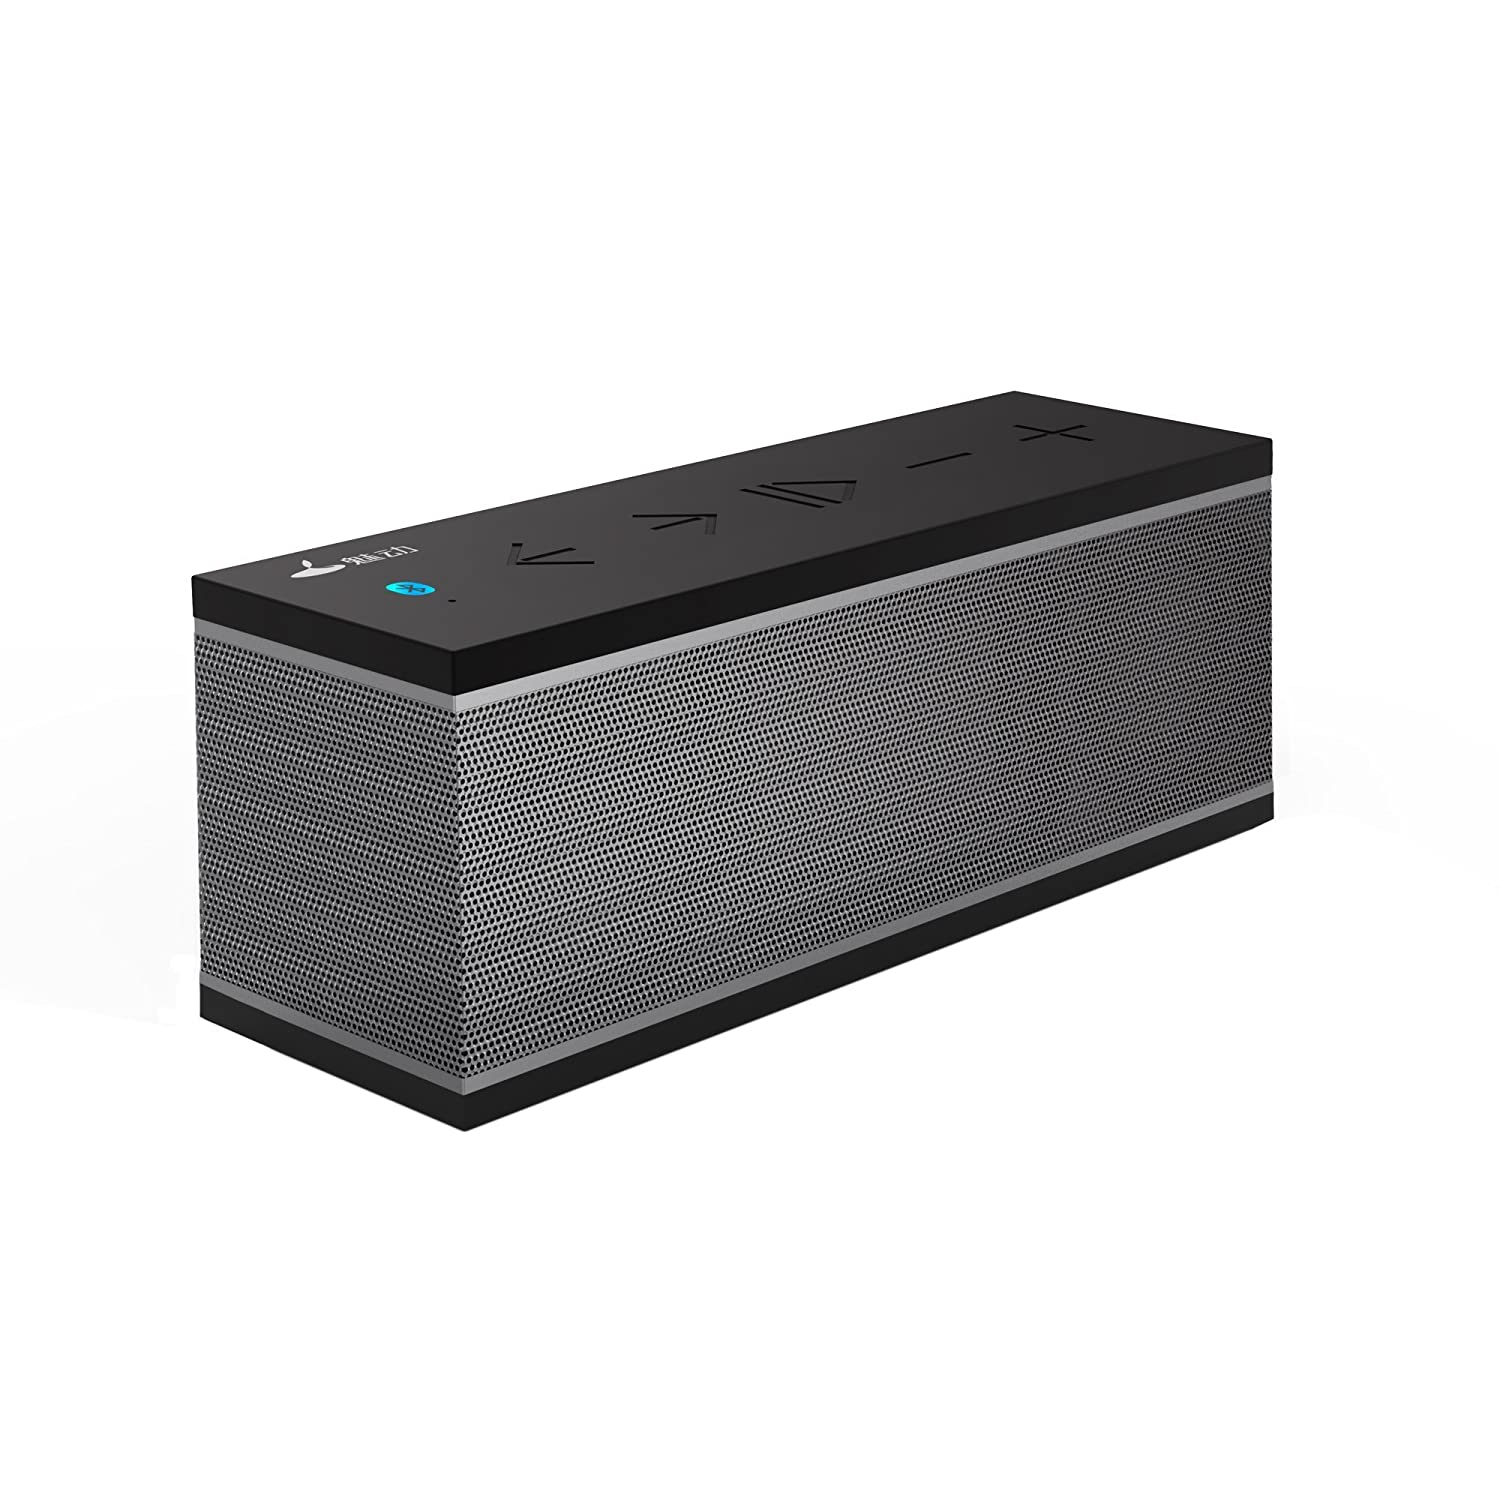 Meidong 2110 Bluetooth Speakers Portable Wireless Speaker with 12W Rich Deep Bass, Waterproof IPX5 Shower Splash Proof/Premium Aluminum Shell/12 Hours Playtime/Perfect for MD-00707